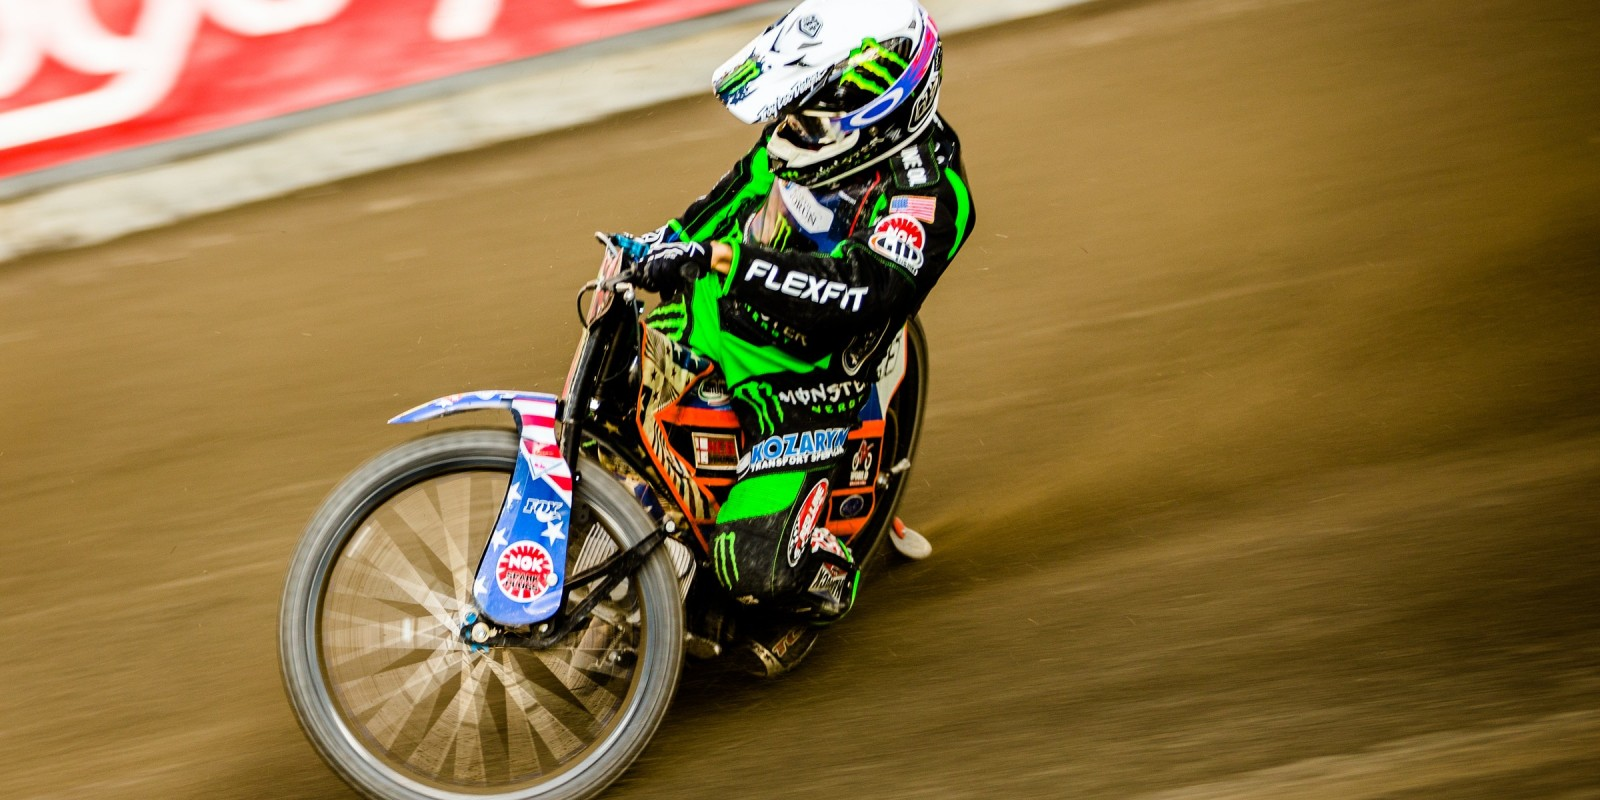 Images of Greg Hancock from the first round of the Speedway Best Pairs race